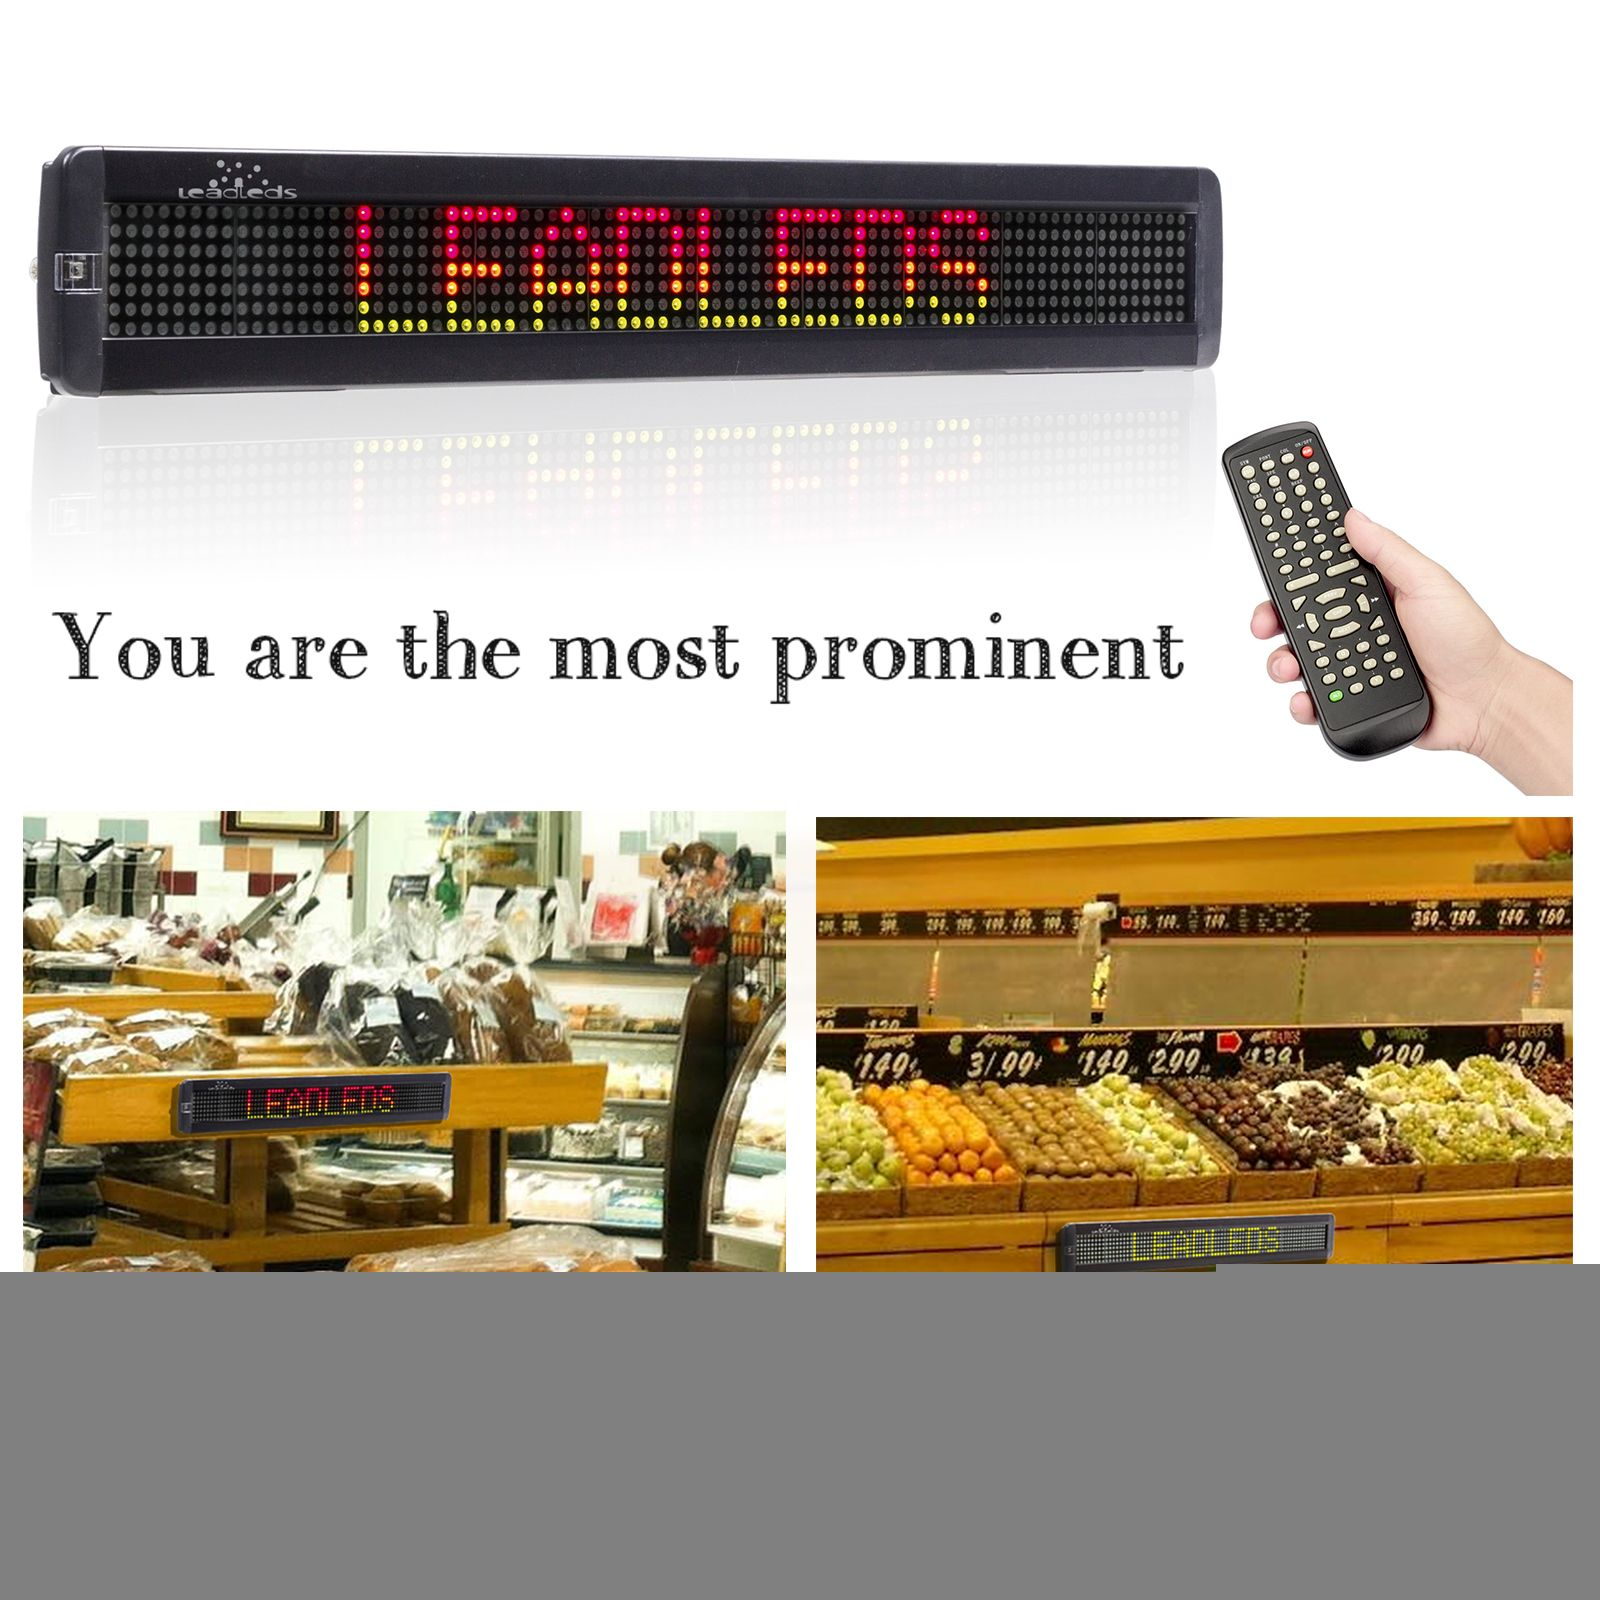 Pin by leadleds on Led Programmable Message Board | Led signs